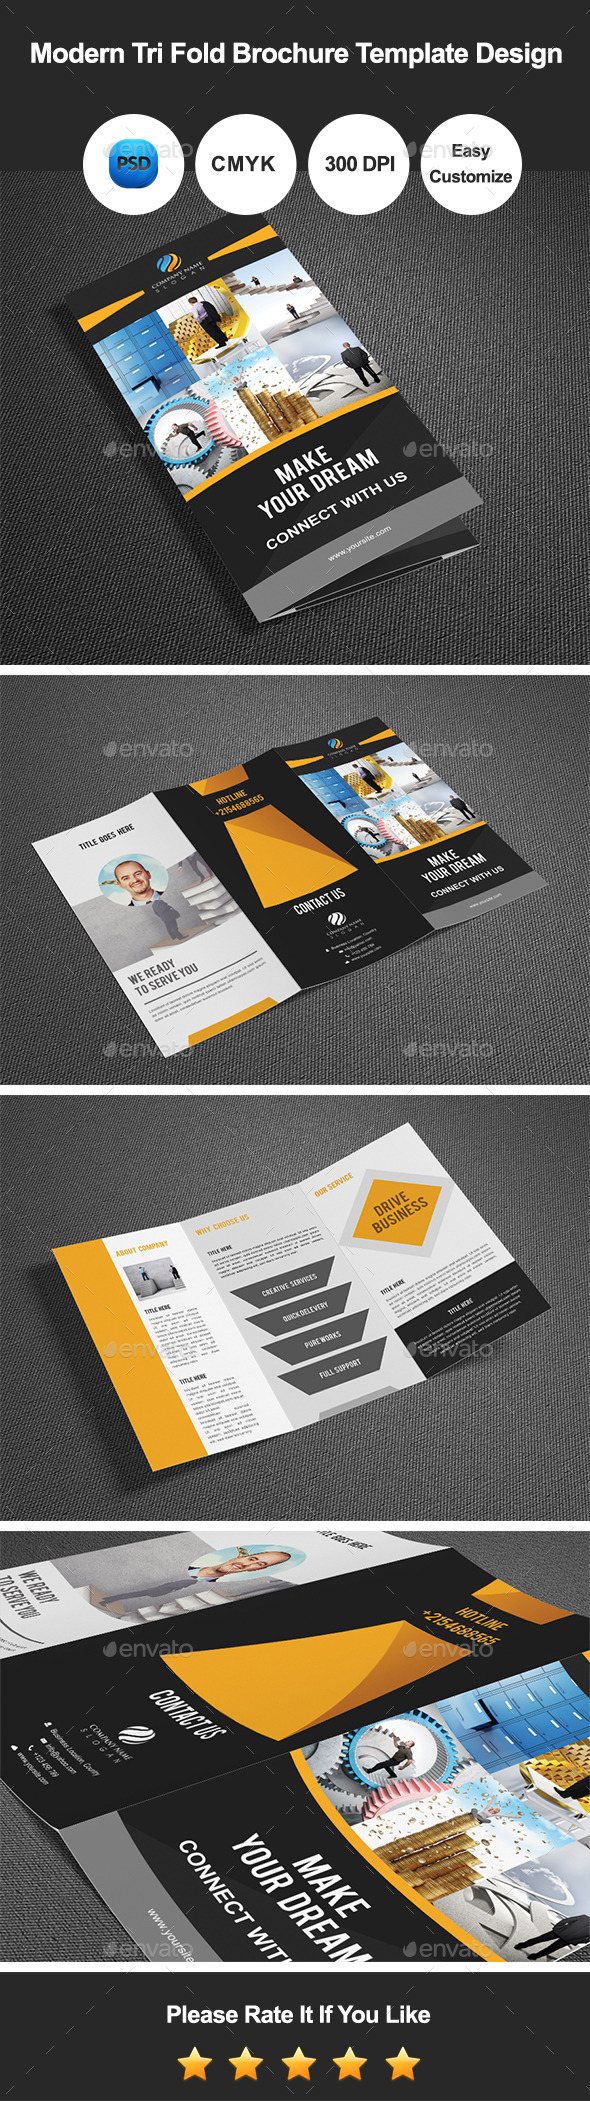 Modern Tri Fold Brochure Template Design - Corporate Brochures